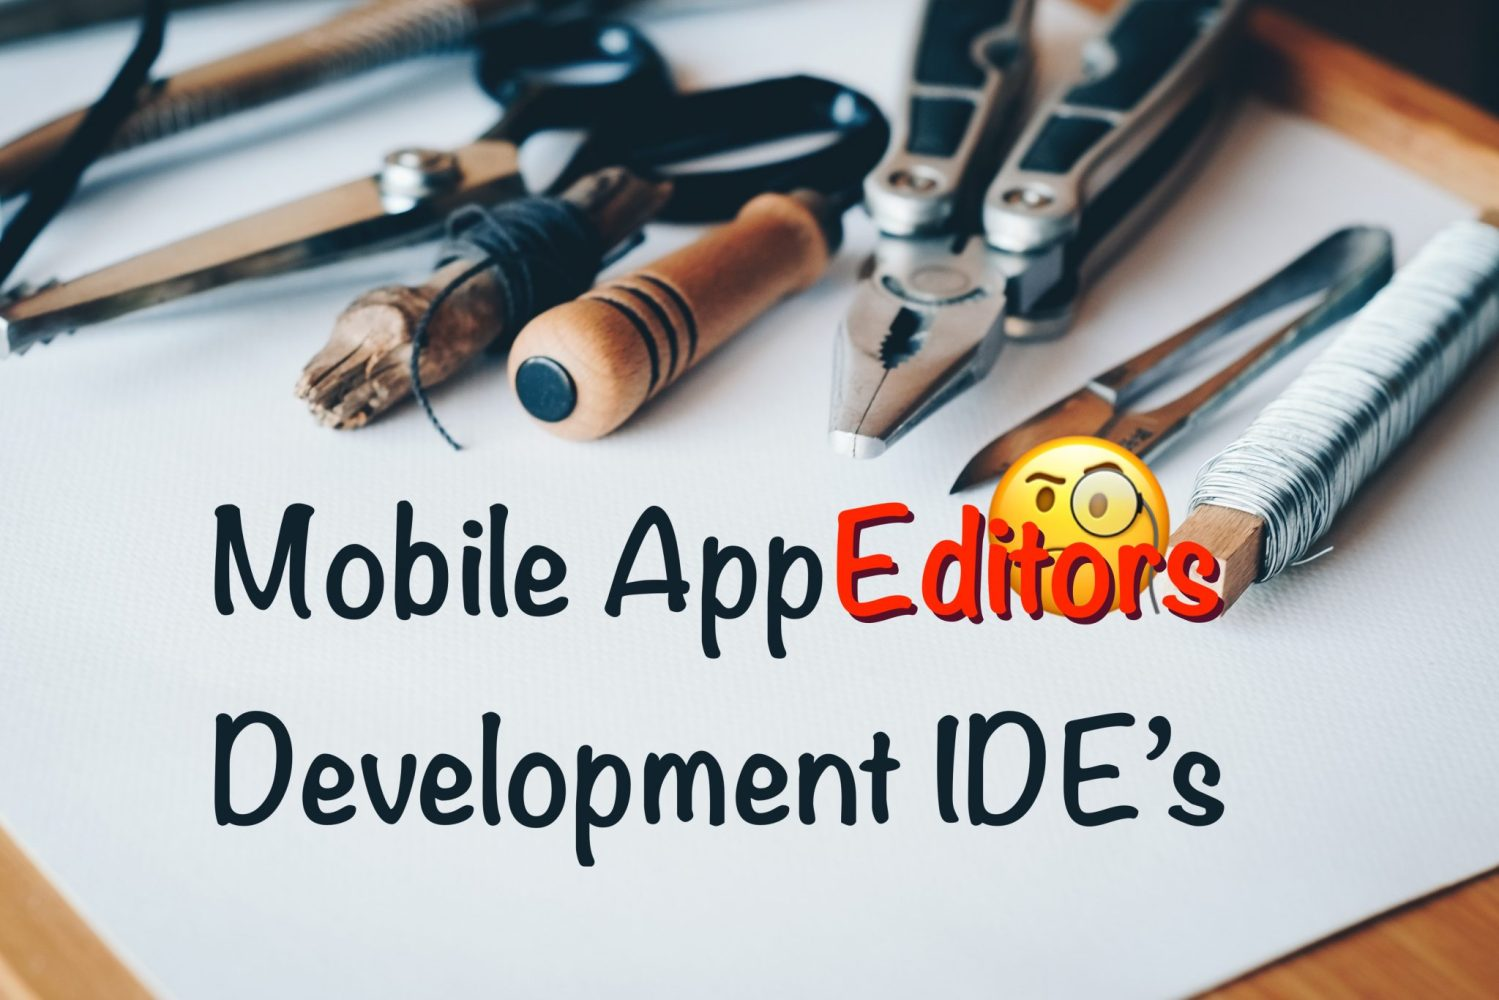 Mobile Development IDE's